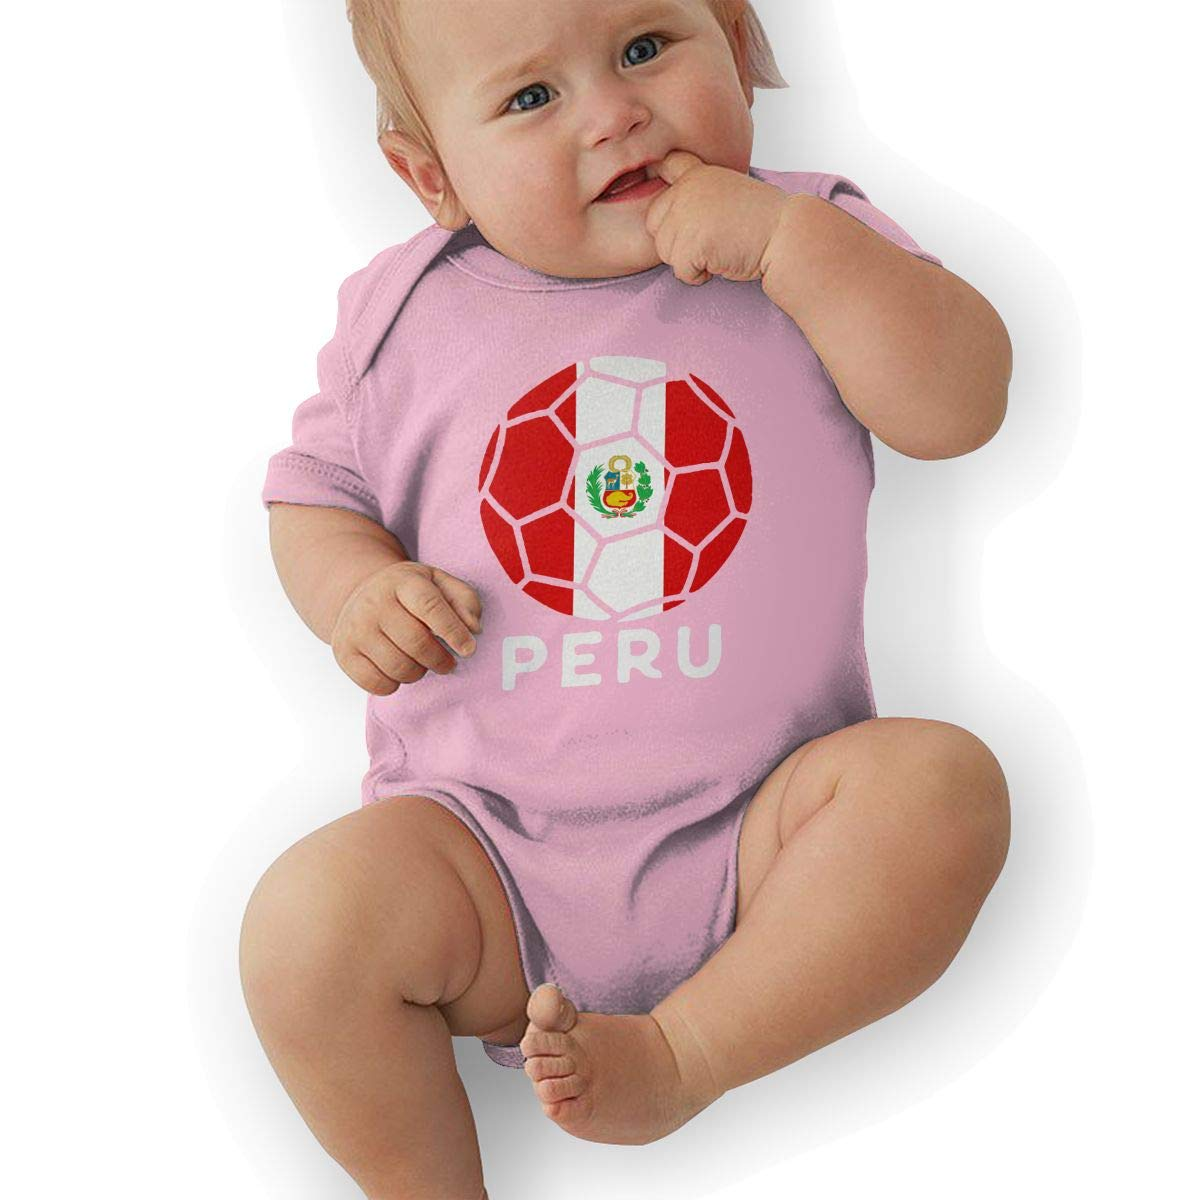 Mri-le2 Unisex Baby Short Sleeve Jersey Bodysuit Peru Flag Football Toddler Jumpsuit